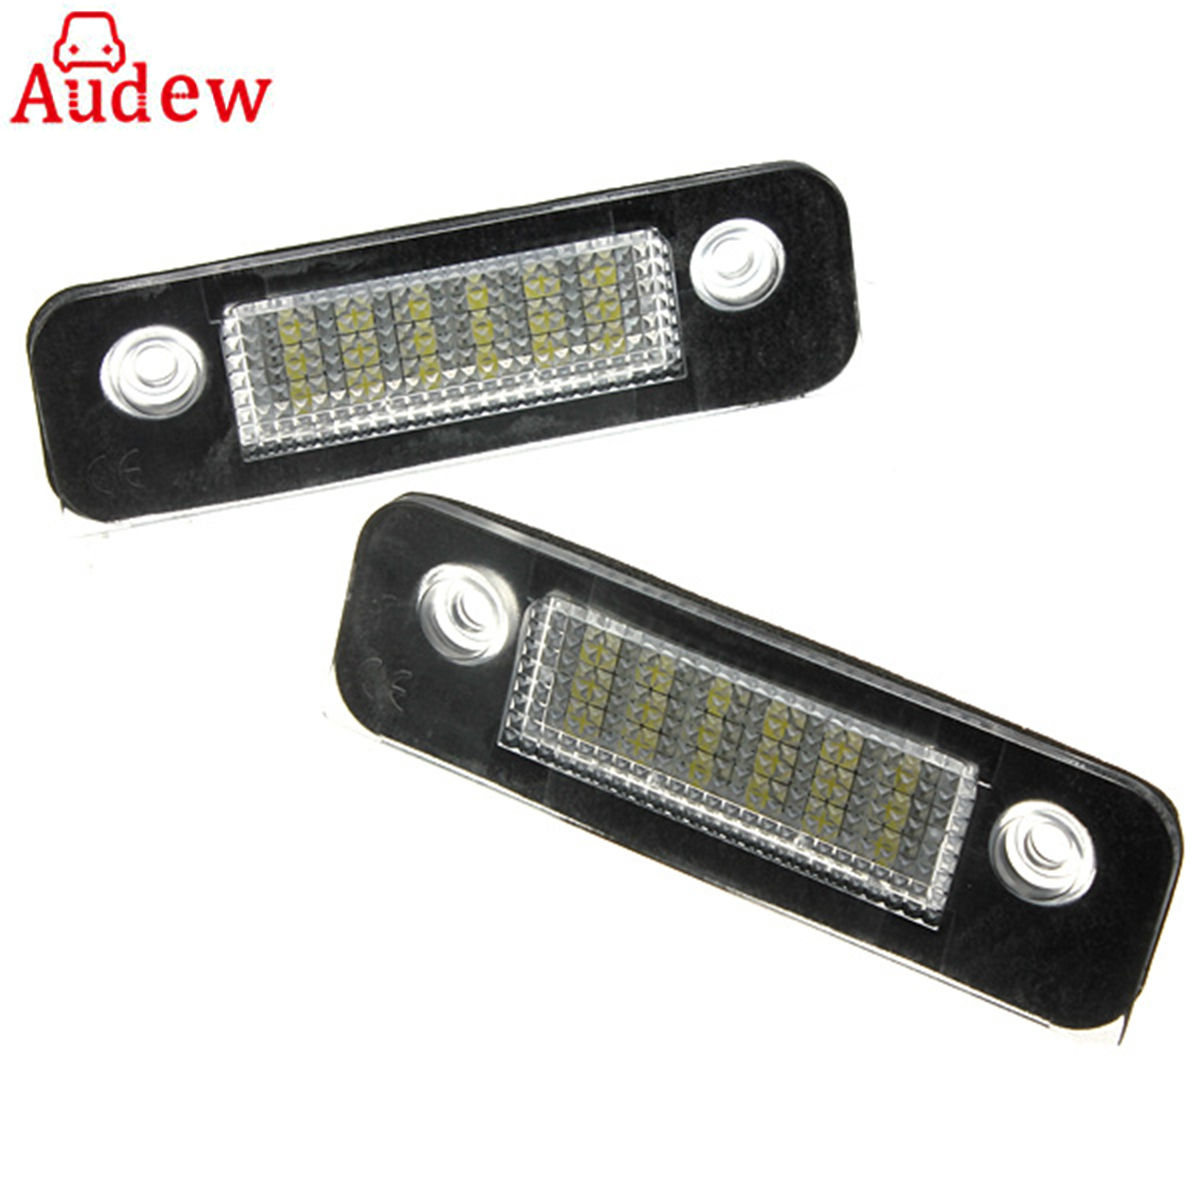 2Pcs 12V 18 LED Car License Plate Light White Number Plate Lamps Light SMD For Ford Fusion for Mondeo/MK2 for Fiesta MK5 2pcs white led license plate light lamps for nissan 350z 370z gtr infiniti g37 g35